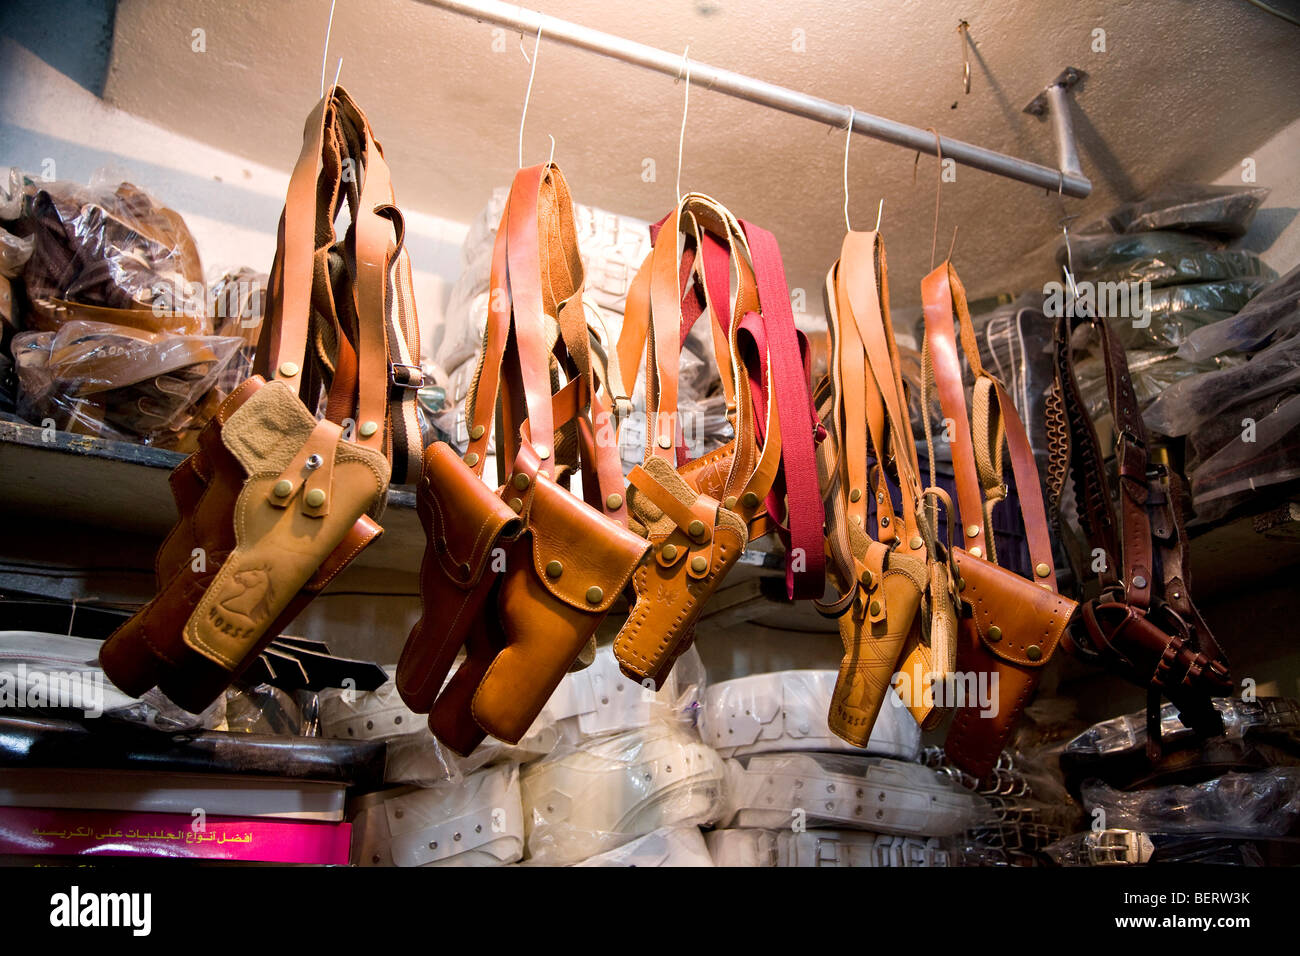 Handgun holsters for sale in the bazaar, Aleppo, Syria, Middle East - Stock Image